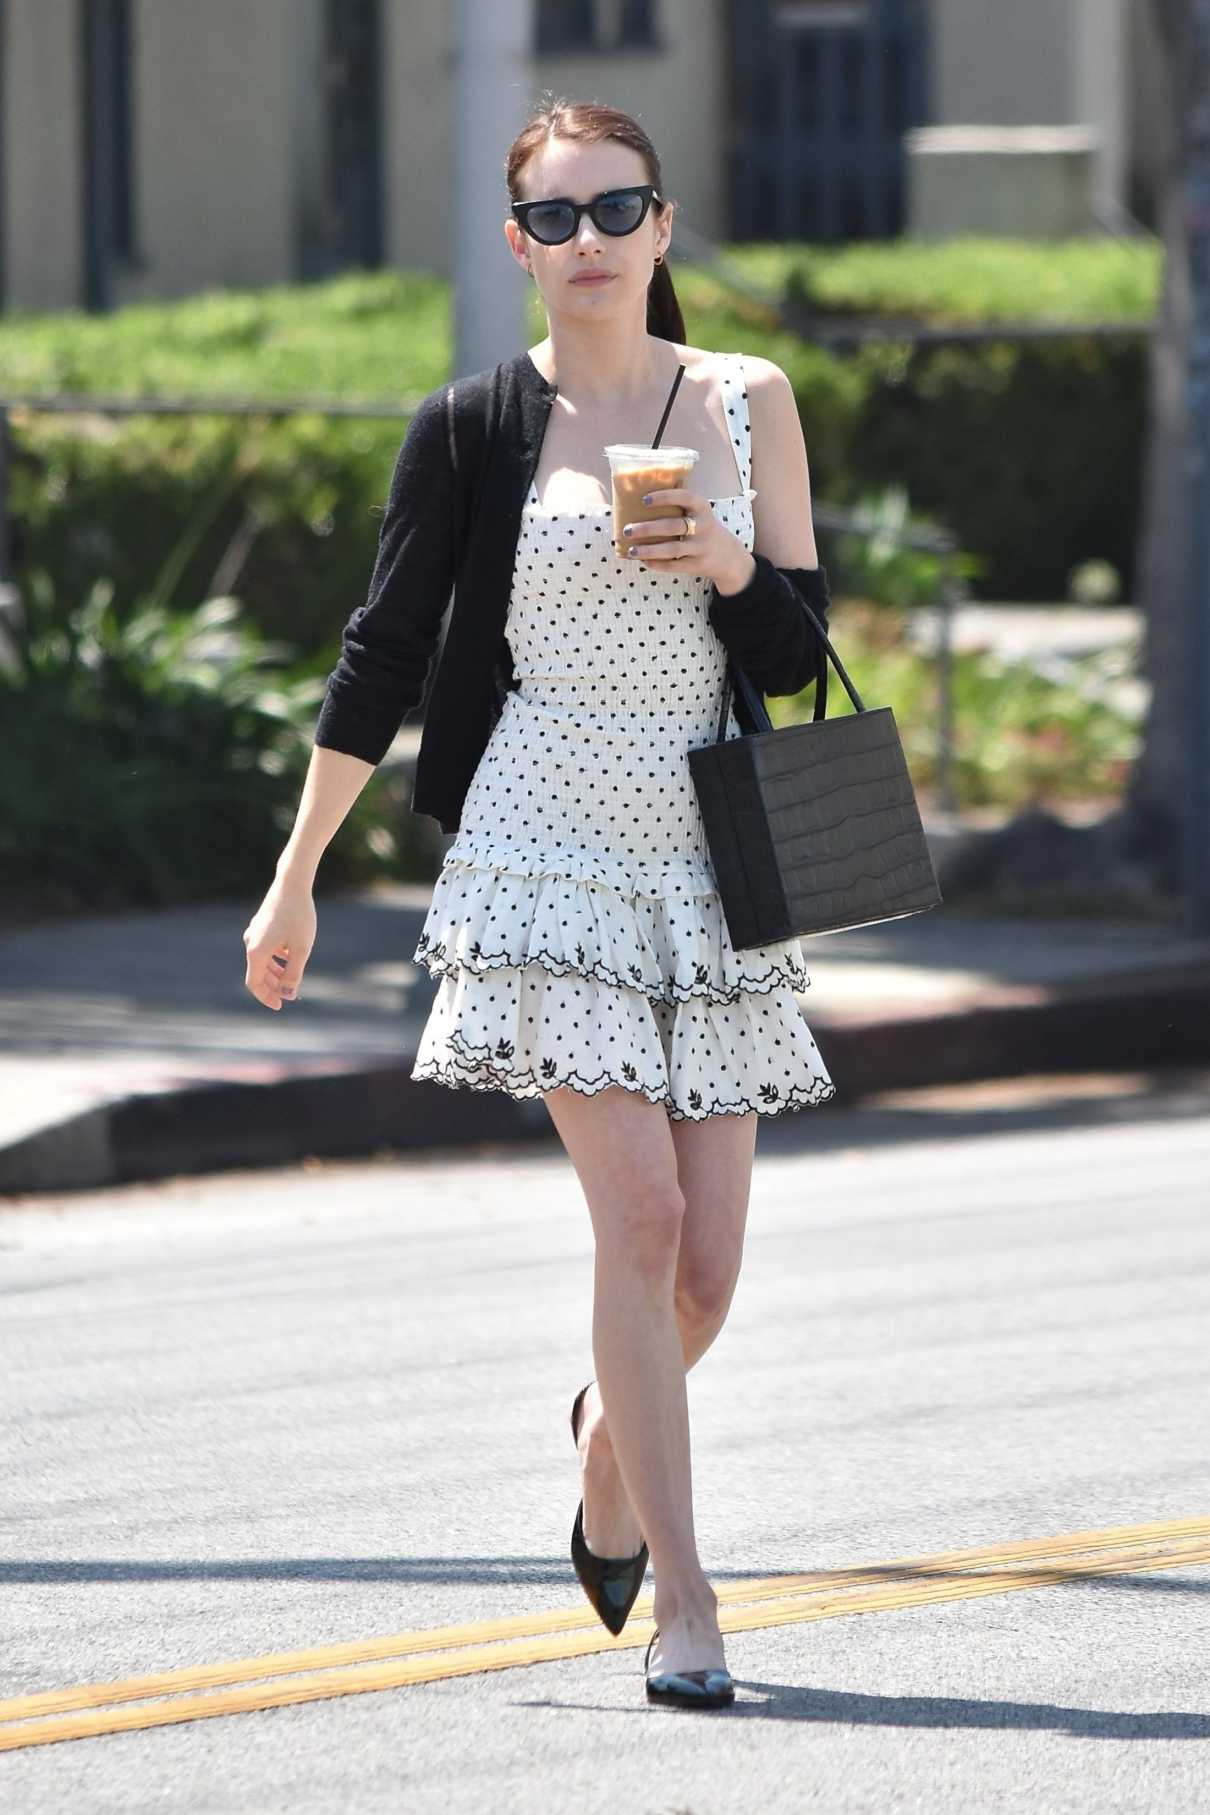 Emma Roberts in a Short White Polka Dot Dress